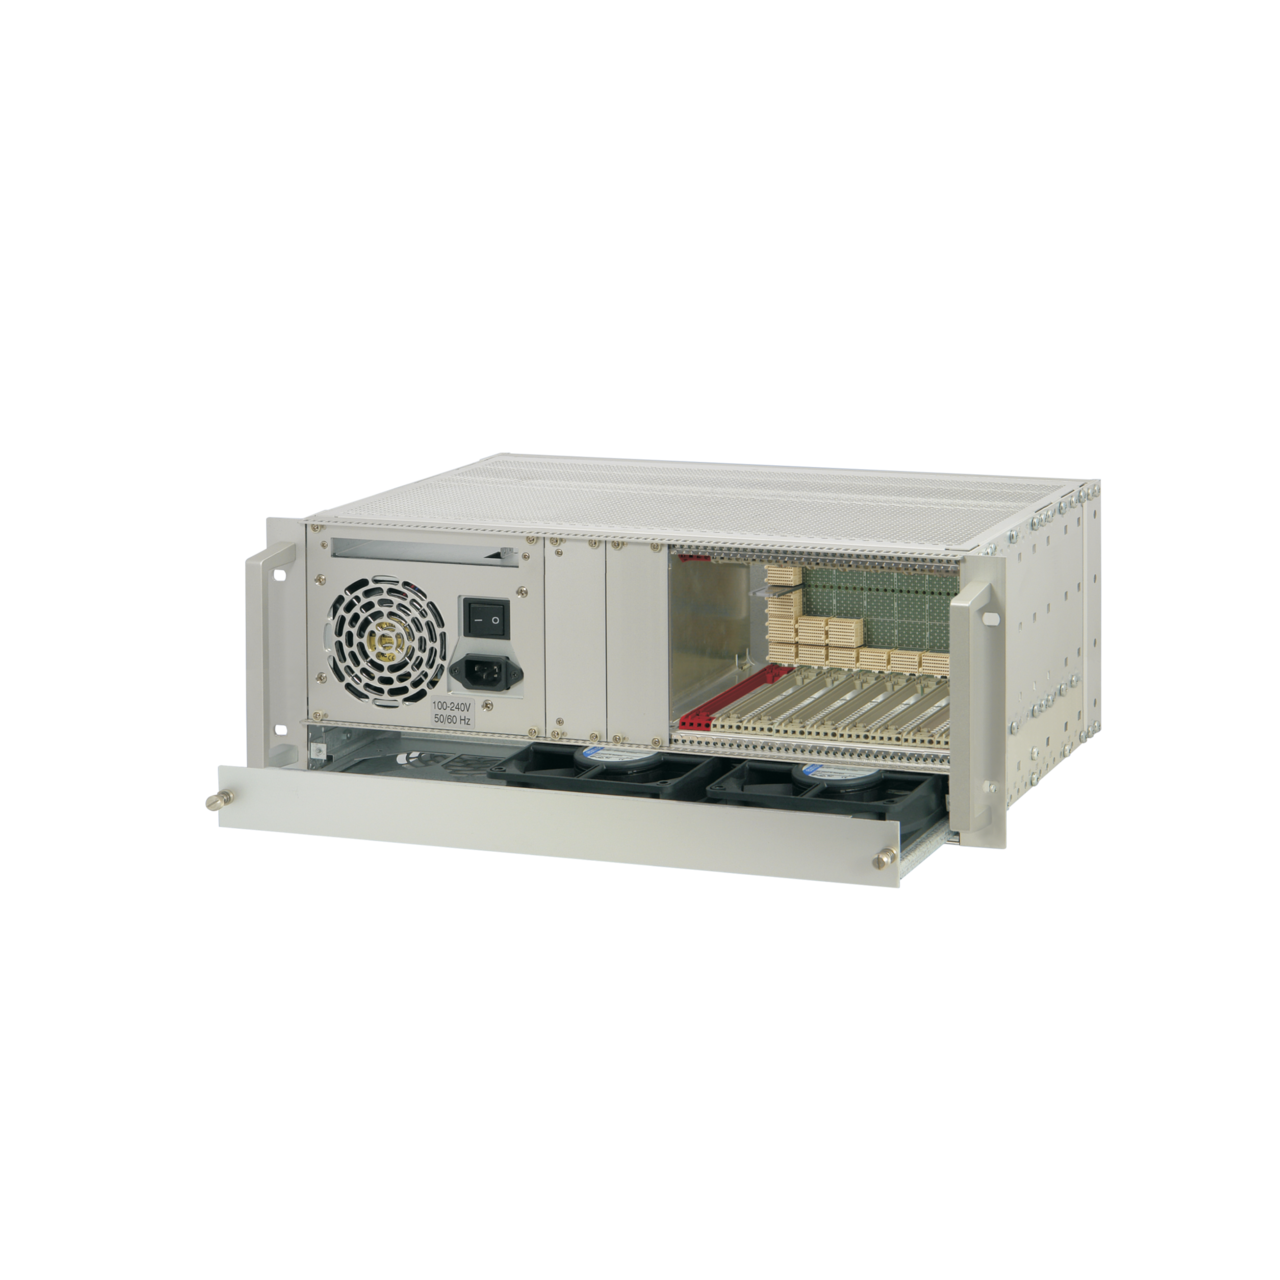 Image for CompactPCI Serial 4 U, 9 slot, without rear I/O, with ATX power supply from nVent SCHROFF | Europe, Middle East, Africa and India